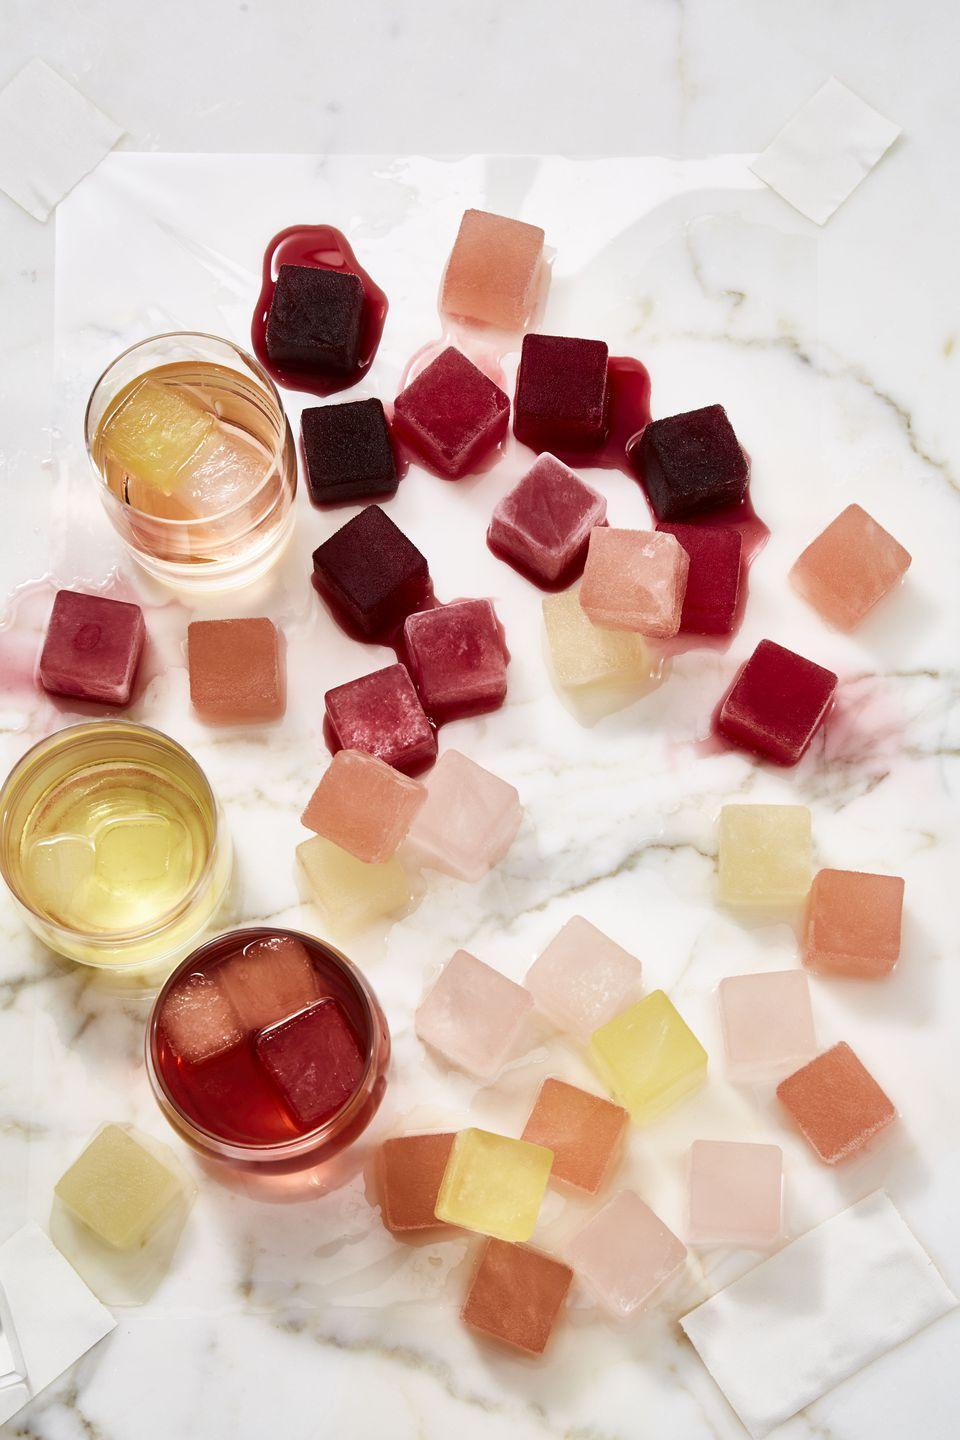 <p>It's always a great time to have wine! Freeze your favorite wine in ice trays (about 1 ounce per cube), then pop one or two into a light pour to make your glass last longer. You can also add a few cubes to sparkling water to keep it light. </p>